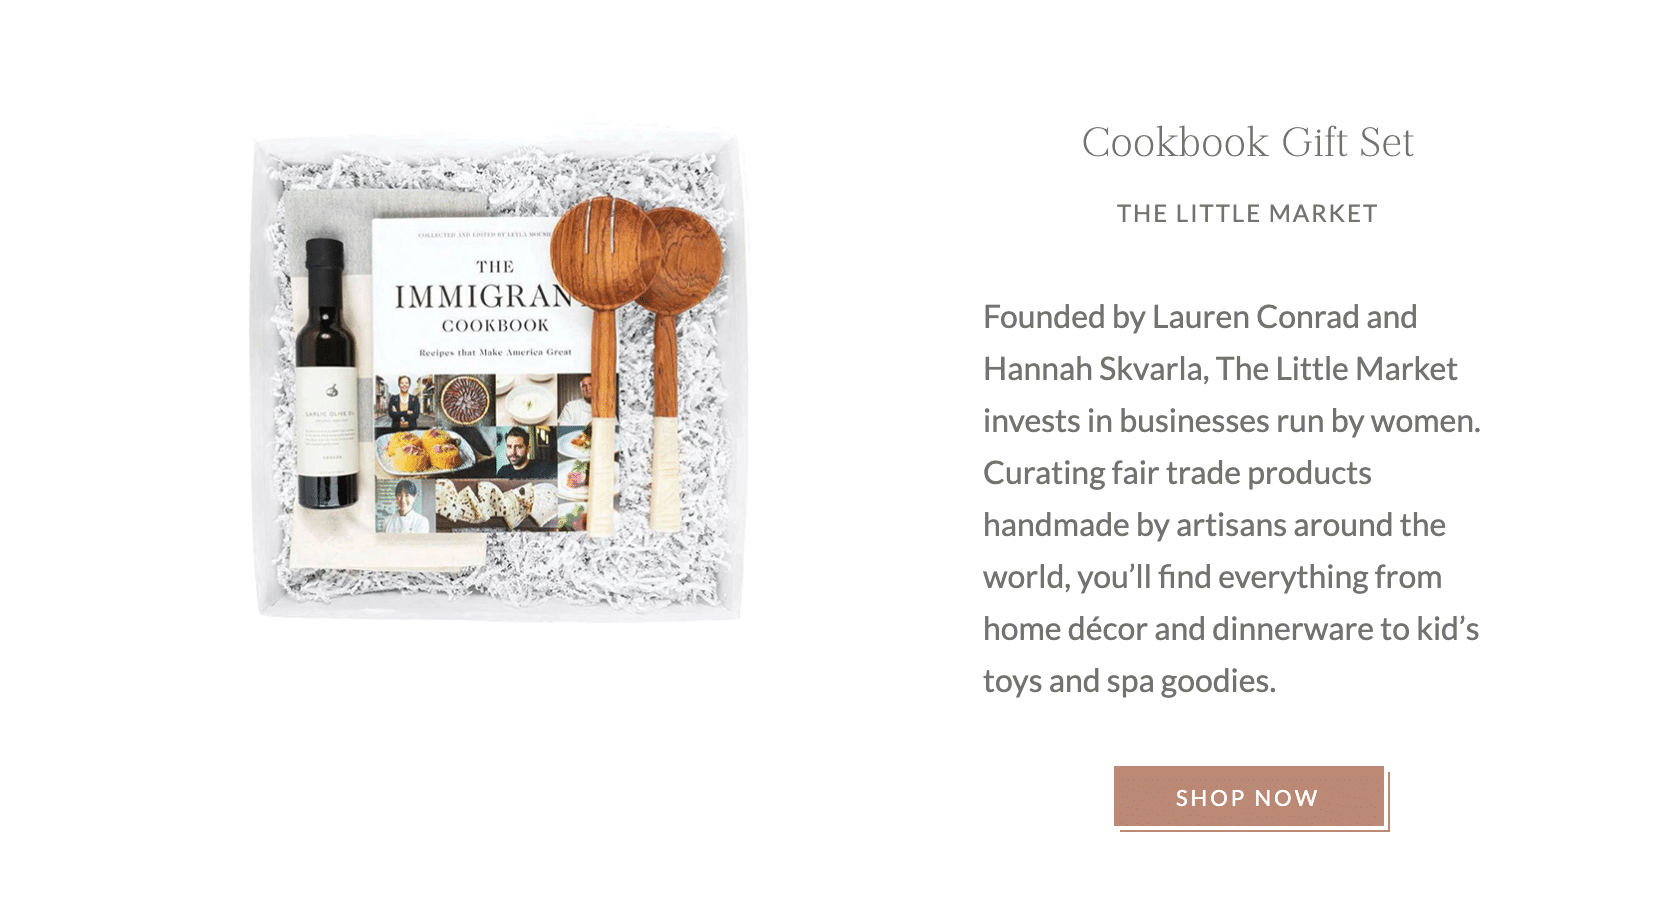 Cookbook Gift Set from The Little Market